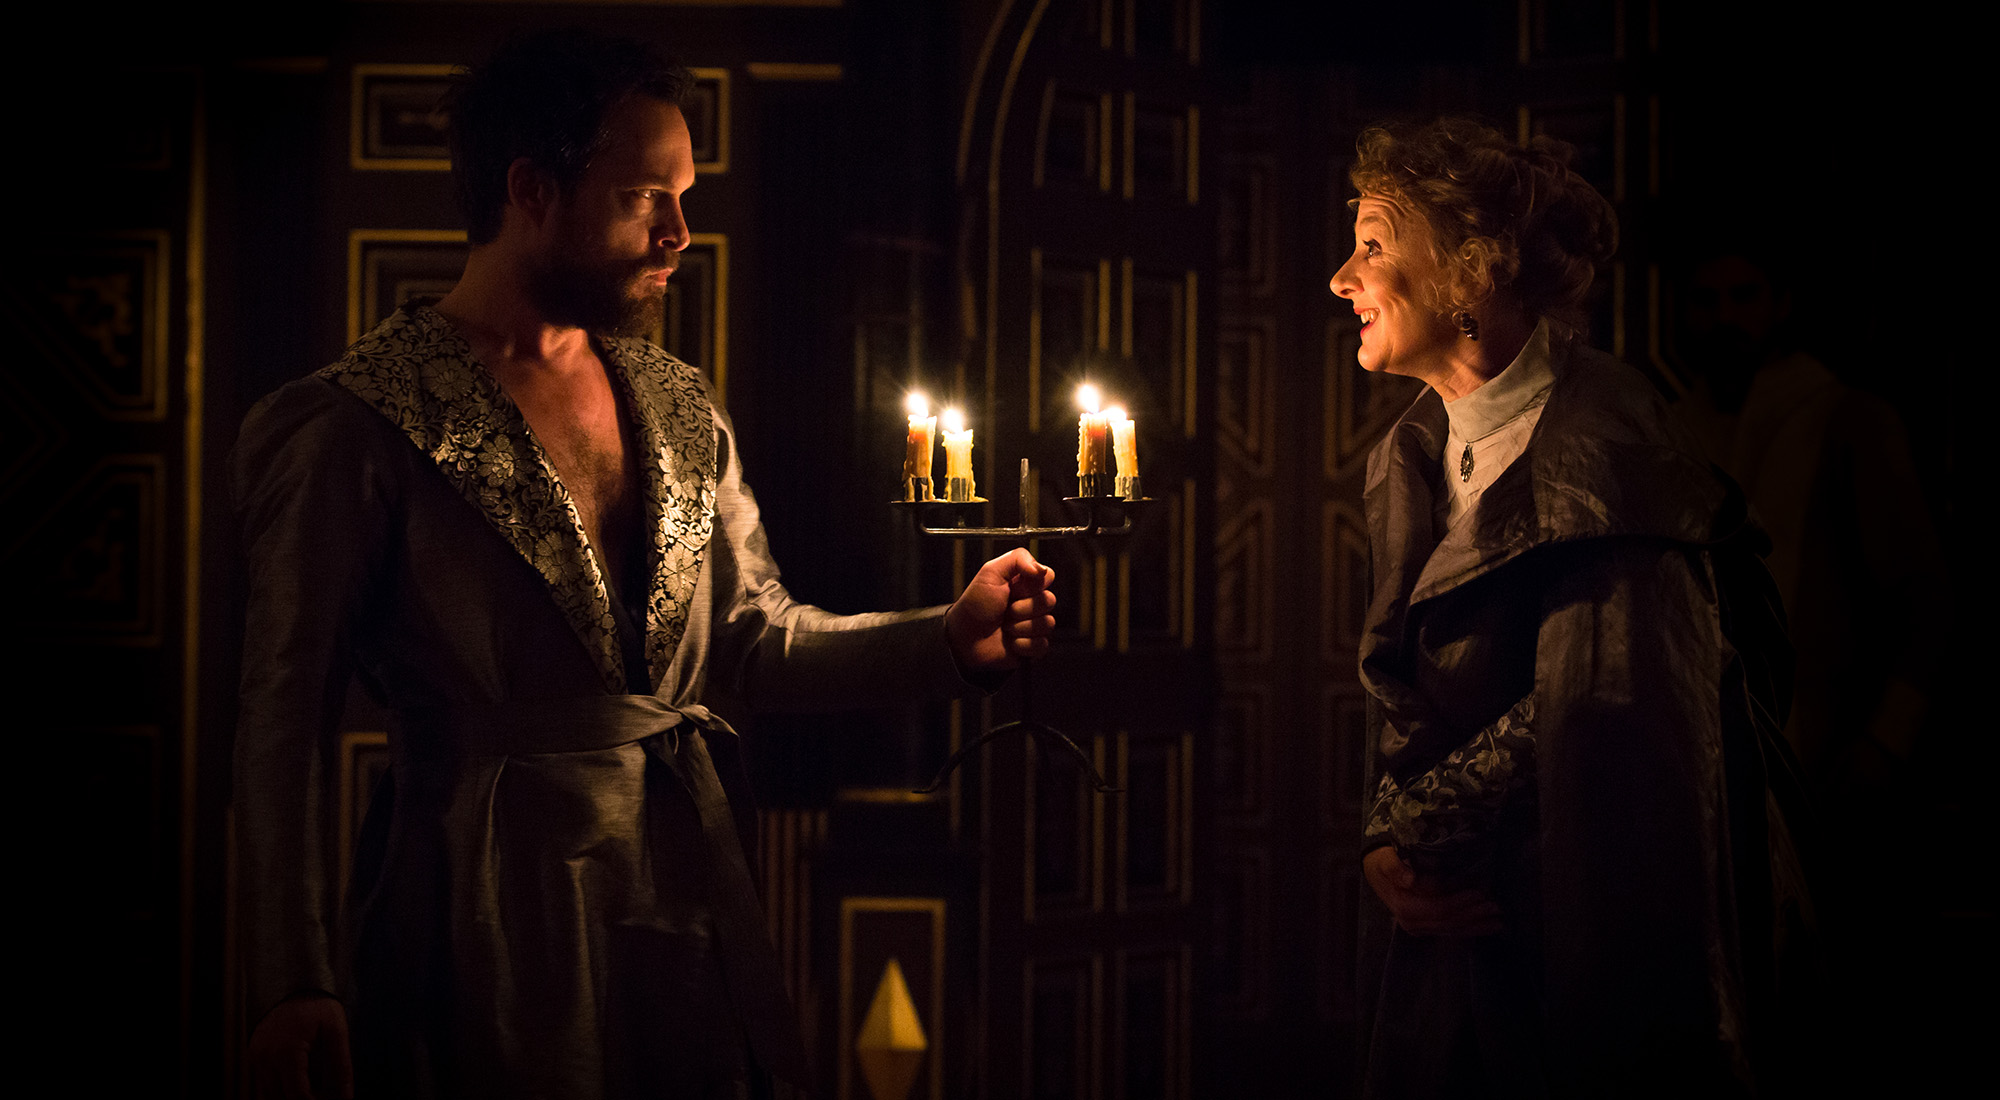 A man wearing a dressing robe holds a lit candelabra before a woman who smiles at him.